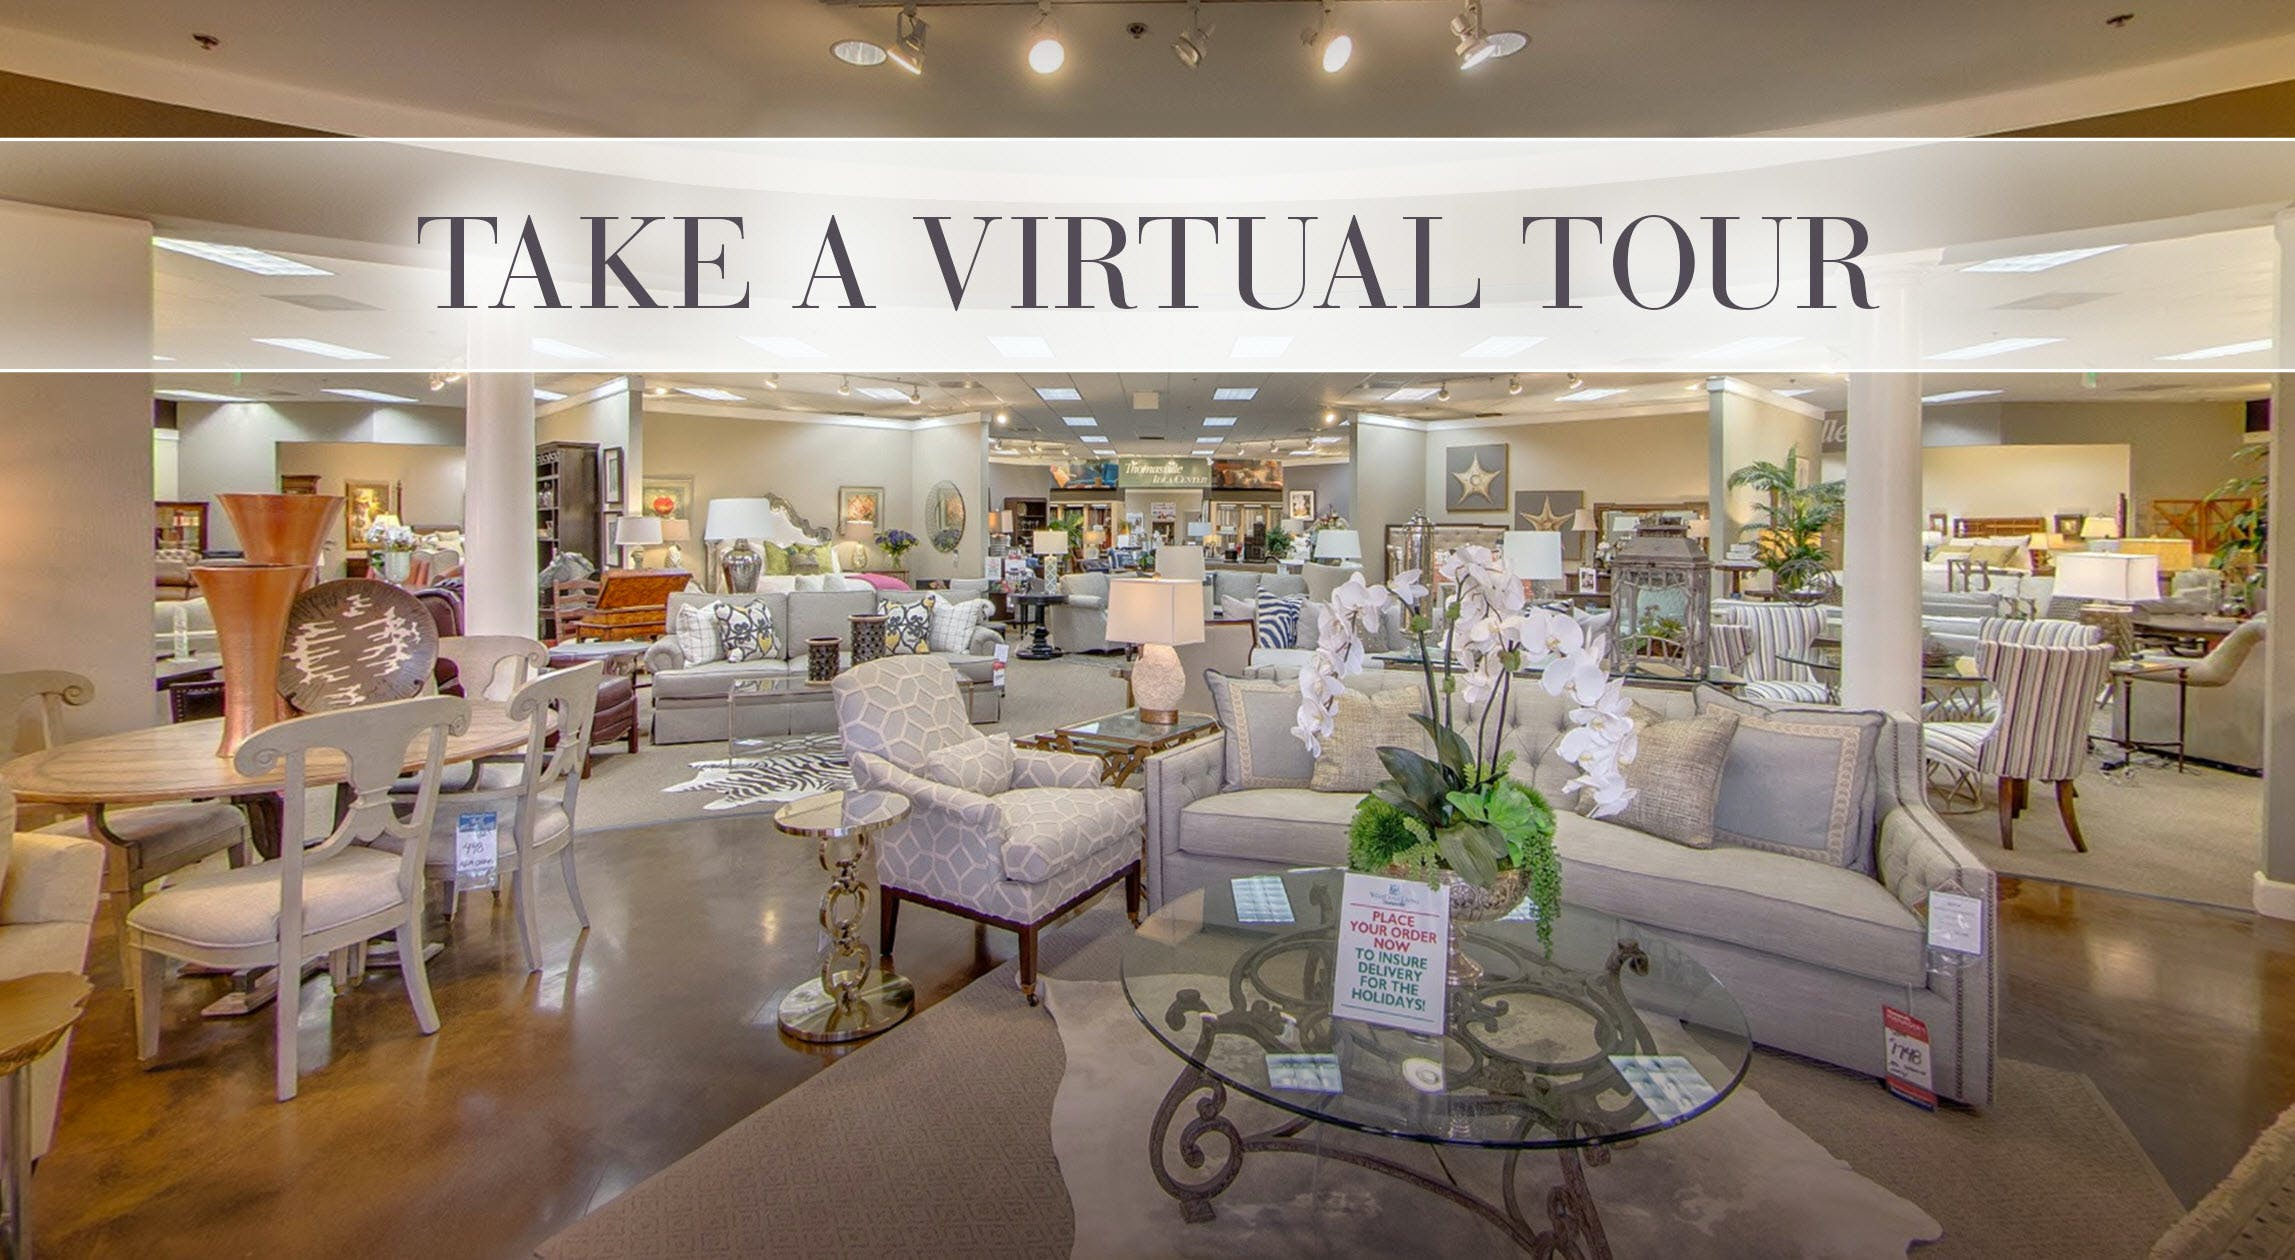 Premium quality designer furniture showroom to see touch and feel our - Southern California Is A Hotbed For Real Estate But Making Your House A Home Is Often Seen As A Difficult Task West Coast Living Thomasville Makes